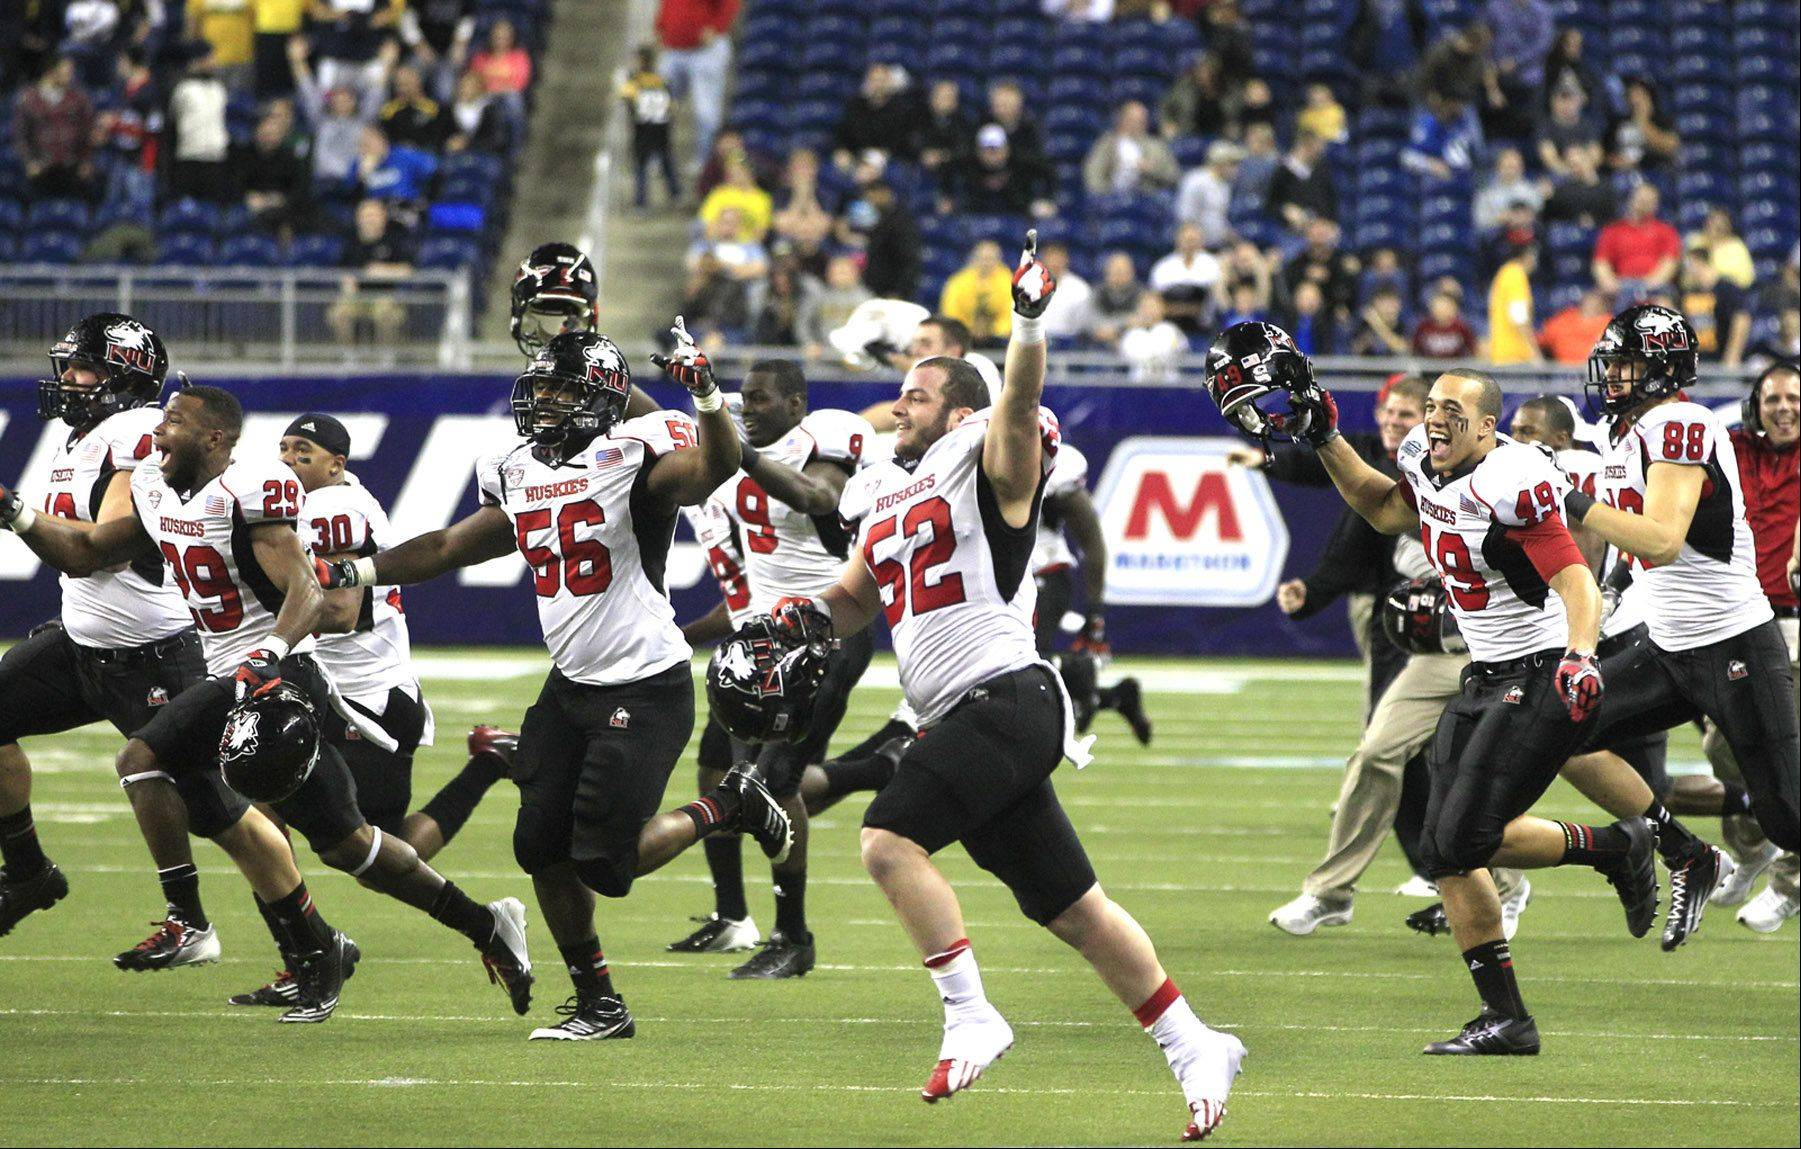 NIU basking in Orange Bowl attention